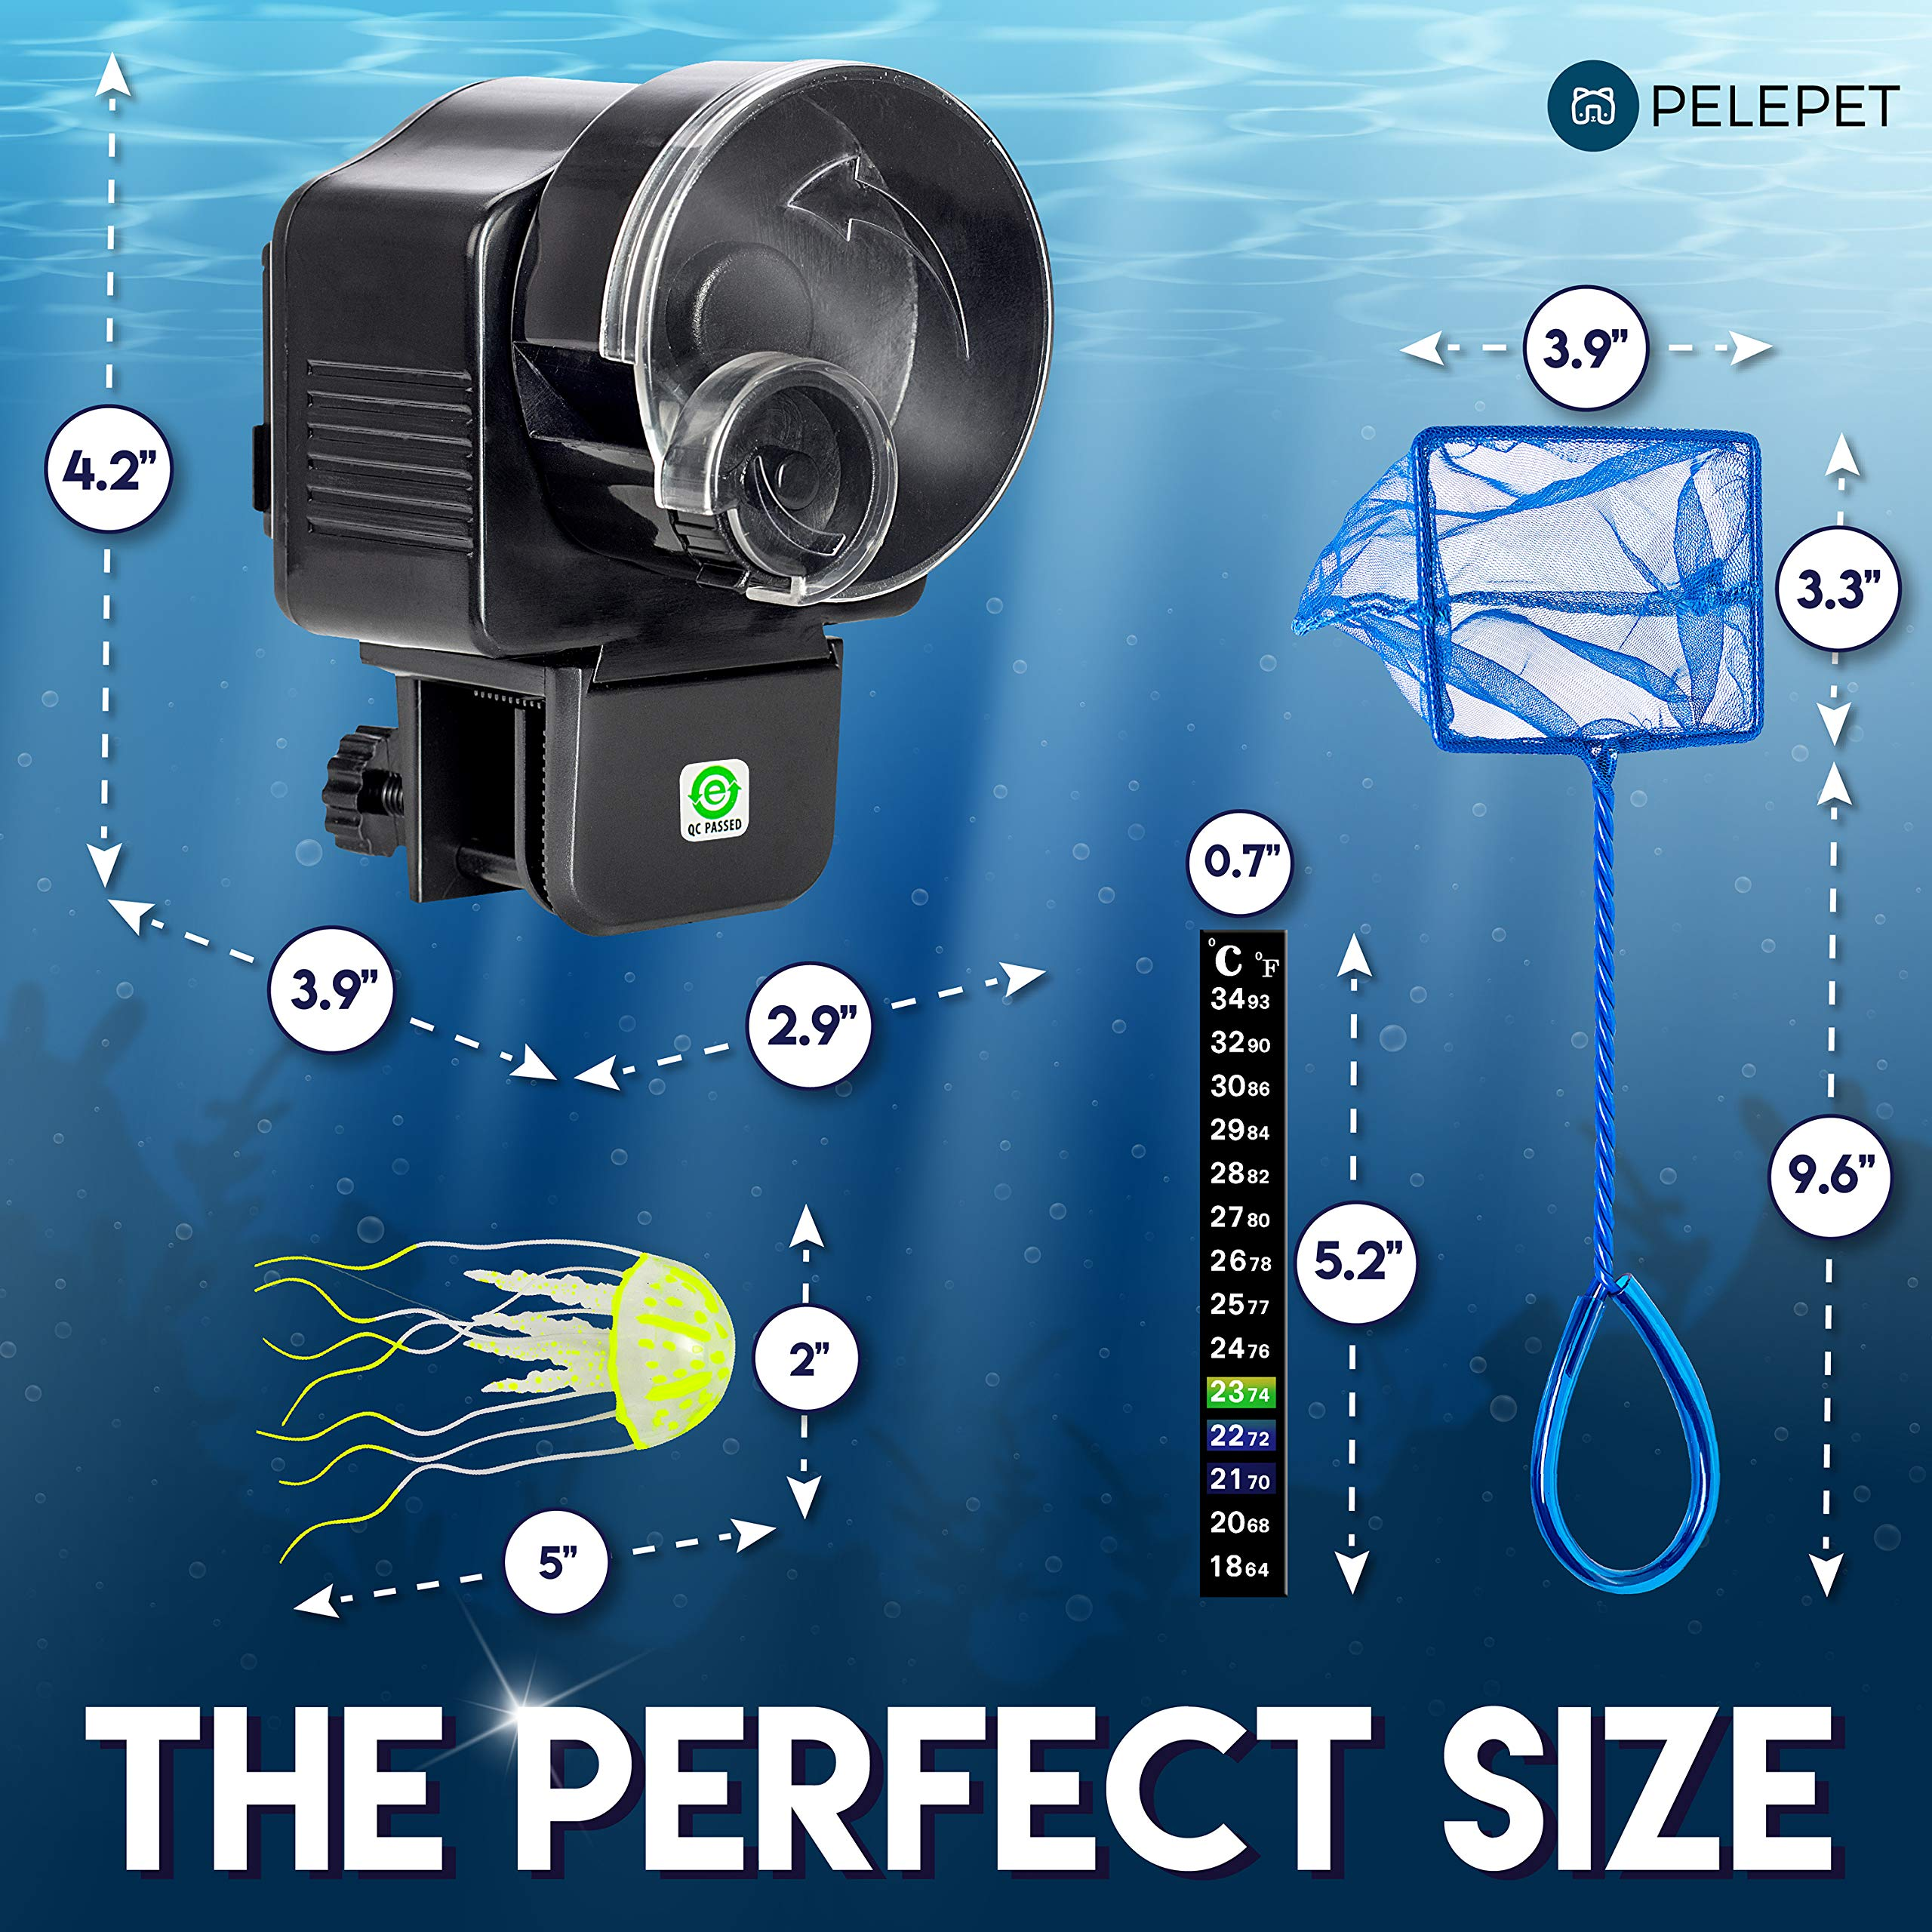 PELEPET Automatic Fish Feeder - Aquarium Feeder - Fish Food Vacation Feeder - Auto Feeding Unit + Net for Fish Tank, Thermostat & Jelly Fish - Everyday Fish Food Dispenser by PELEPET (Image #4)